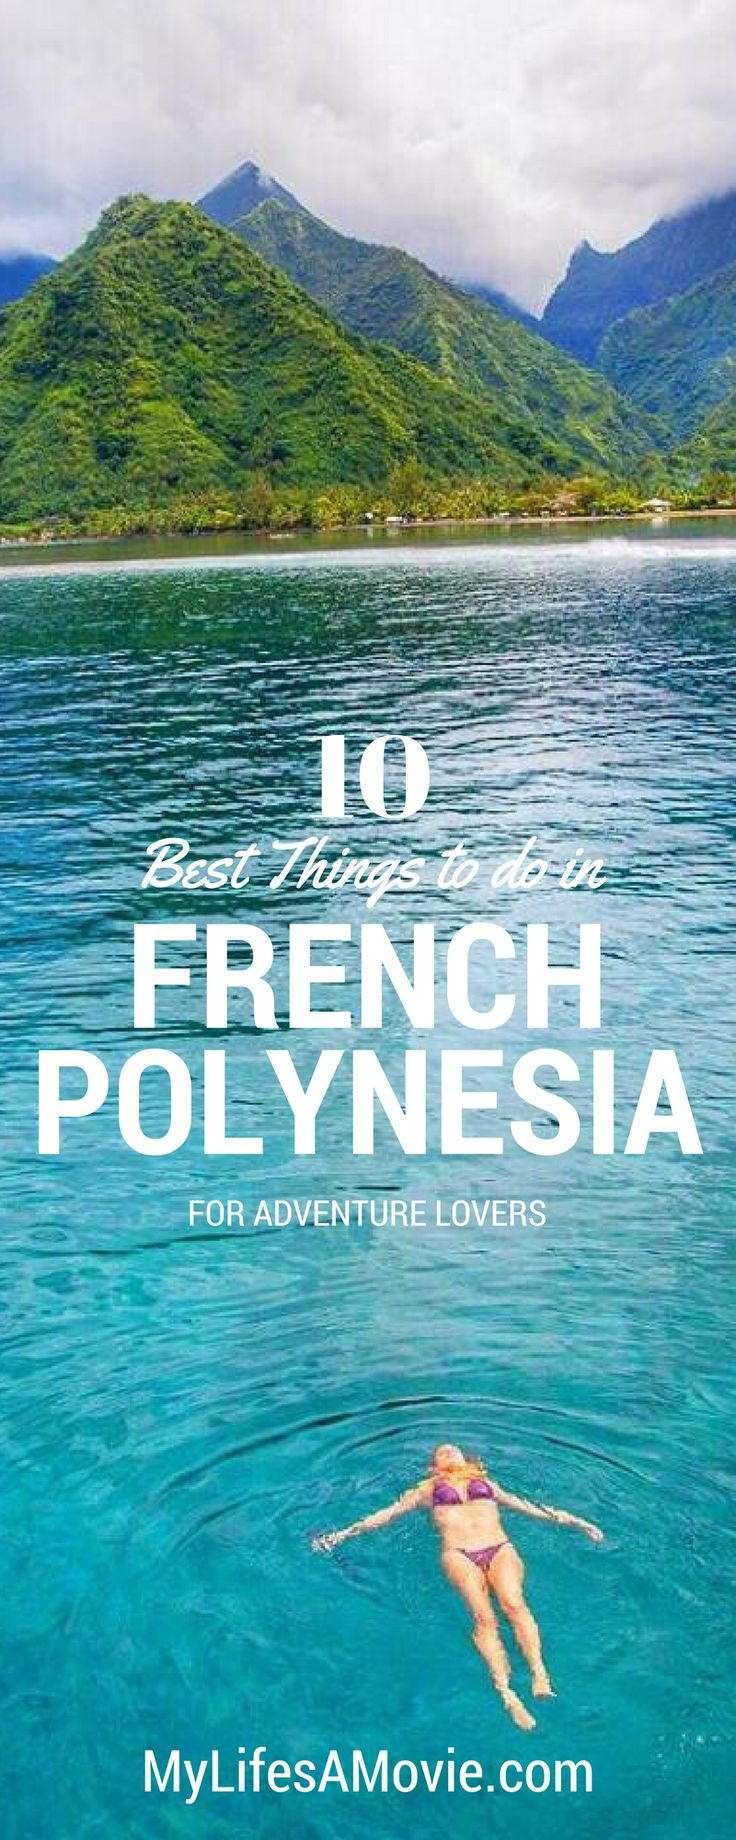 Best Things to do in French Polynesia mylifesamovie.com (2)